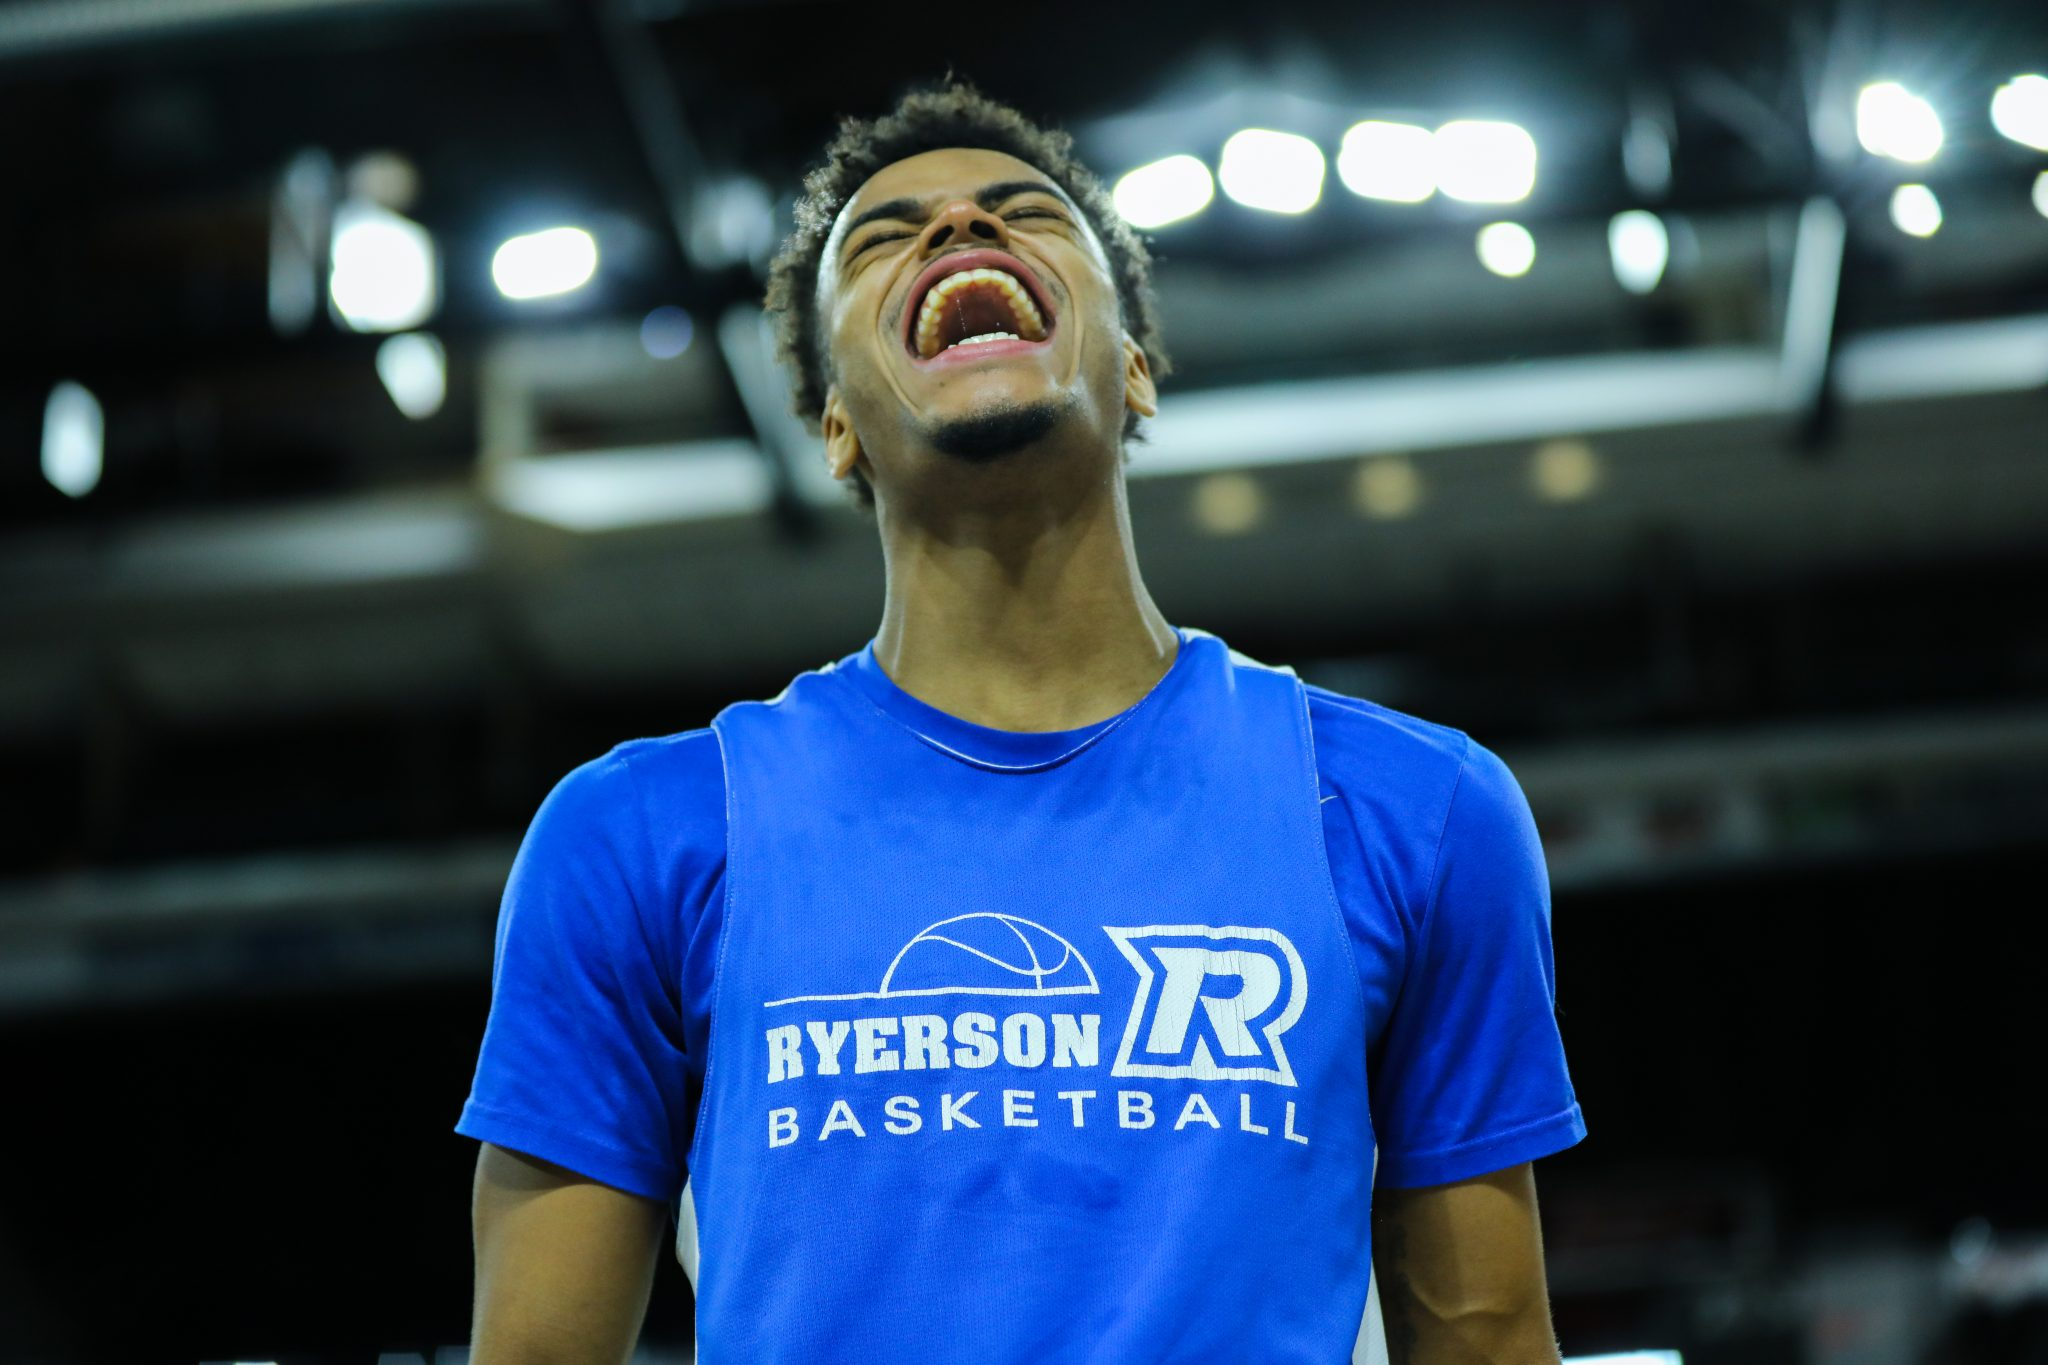 Ryerson Ram, Myles Charvis, screams in exclamation during a practice in Halifax at the National Championship. By Luke Galati